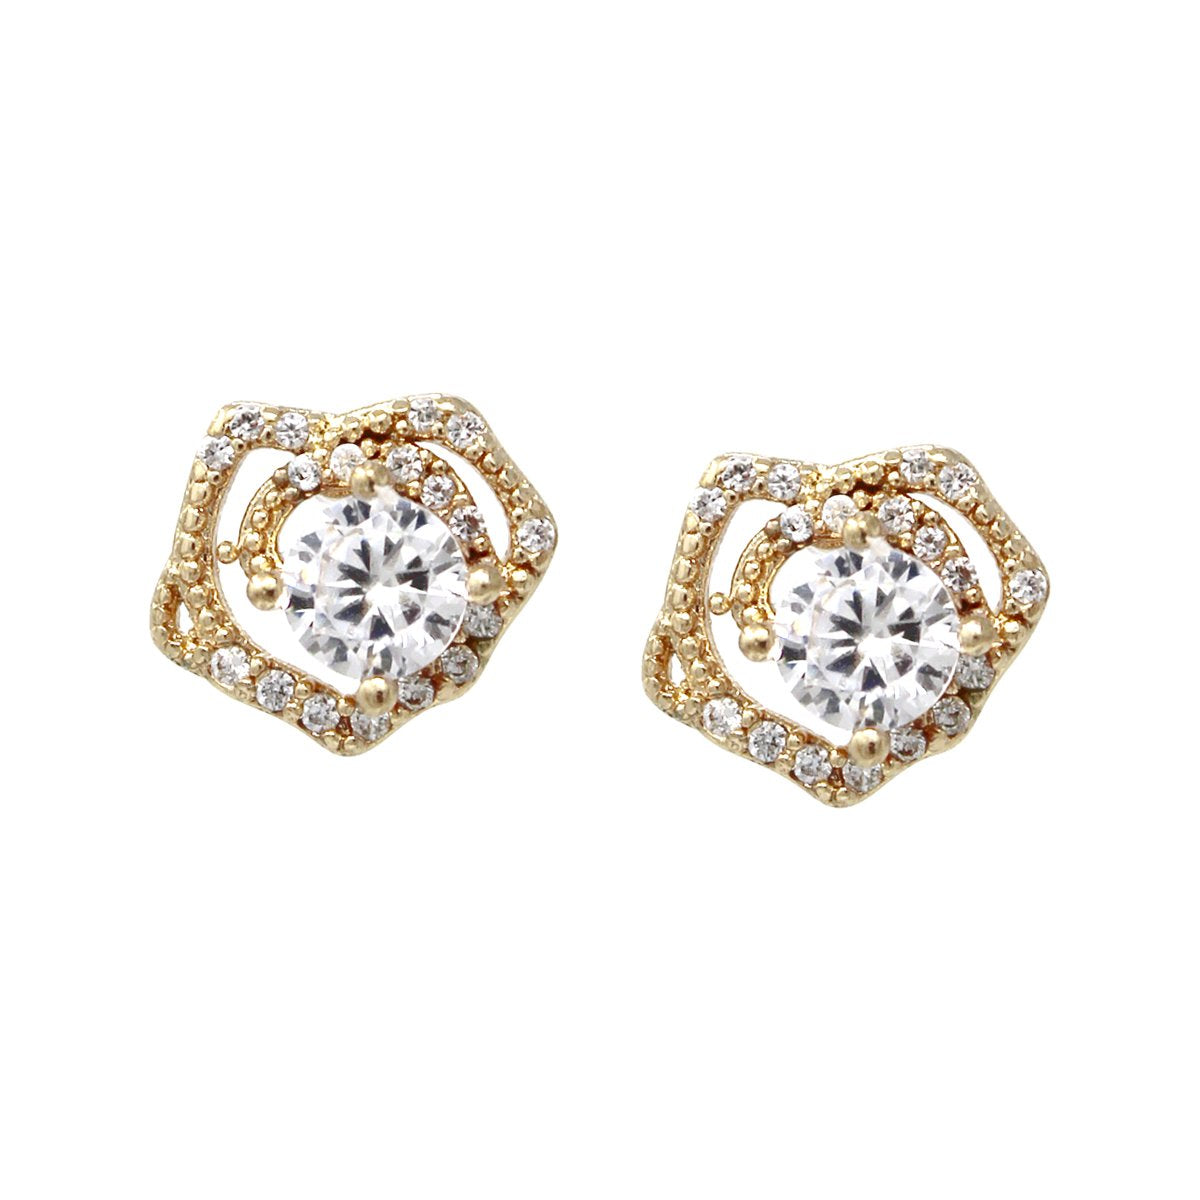 BITZ CUBIC ZIRCONIA PAVE ROSE STUD EARRINGS TWO COLOR OPTIONS - GOLD OR SILVER